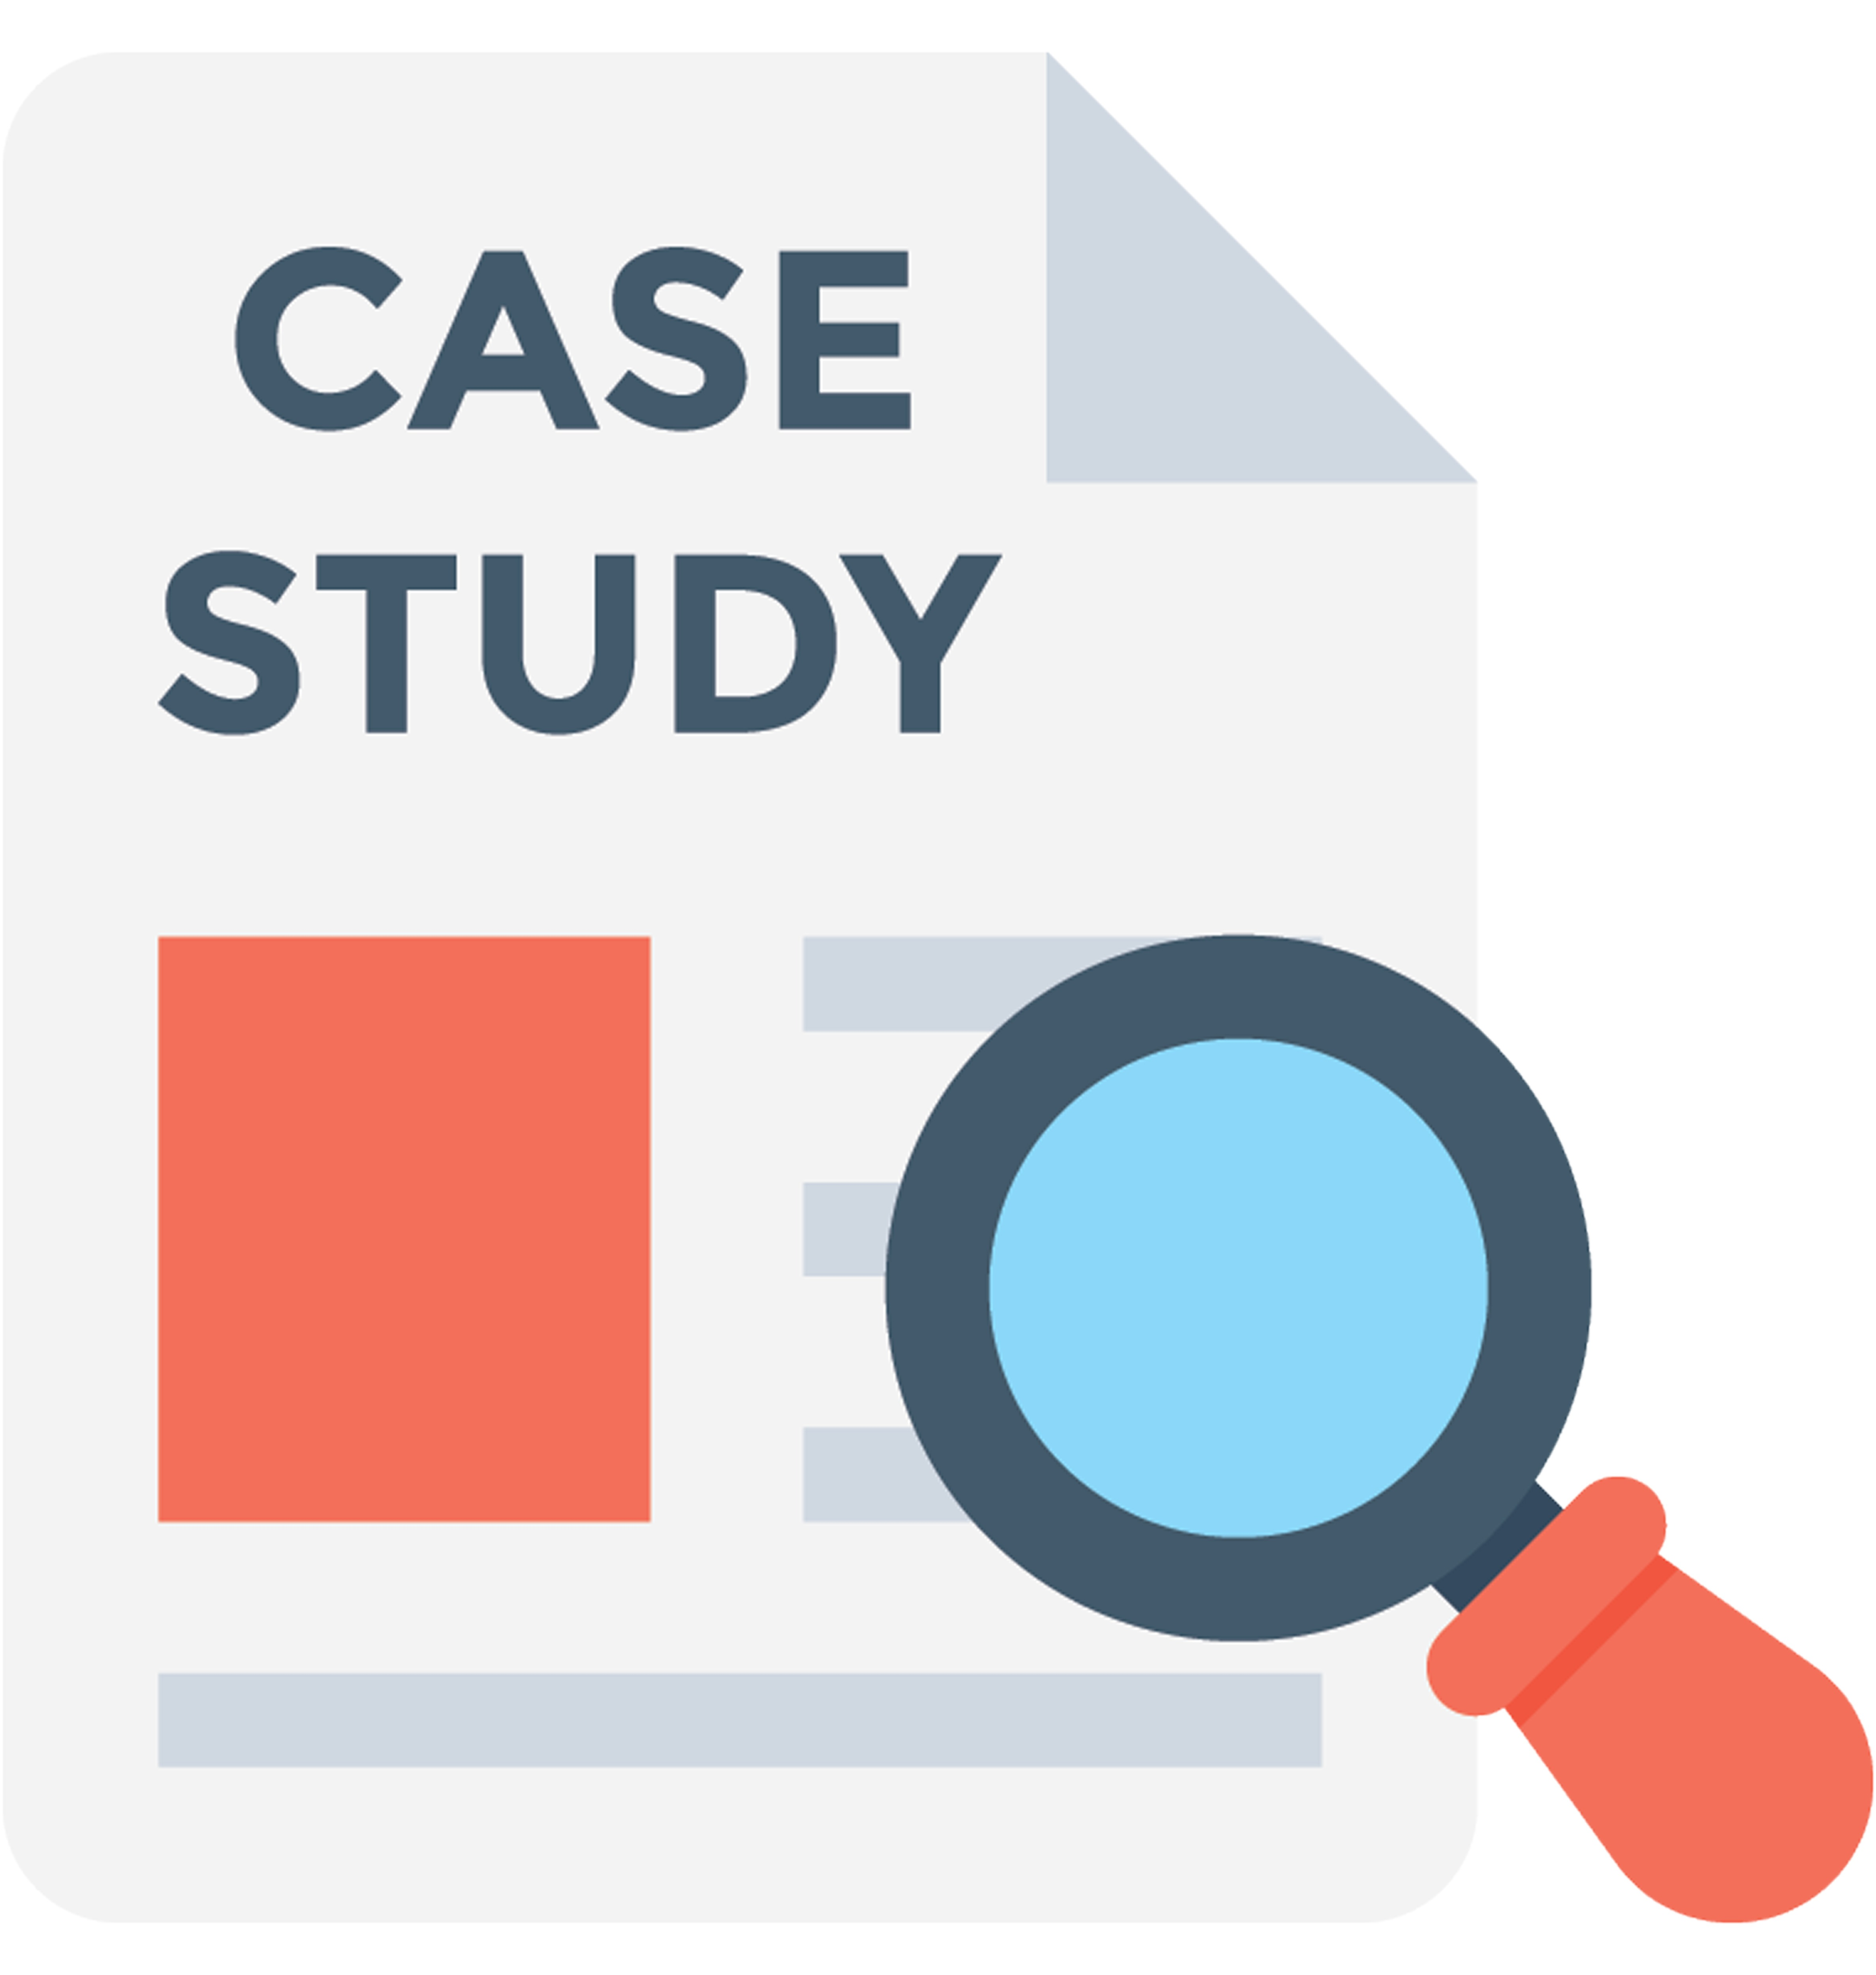 case study on dmi field service In the dmi field service case,  dmi should measure field service performance because the process needs a level of  my field of study mmsd food service case study.